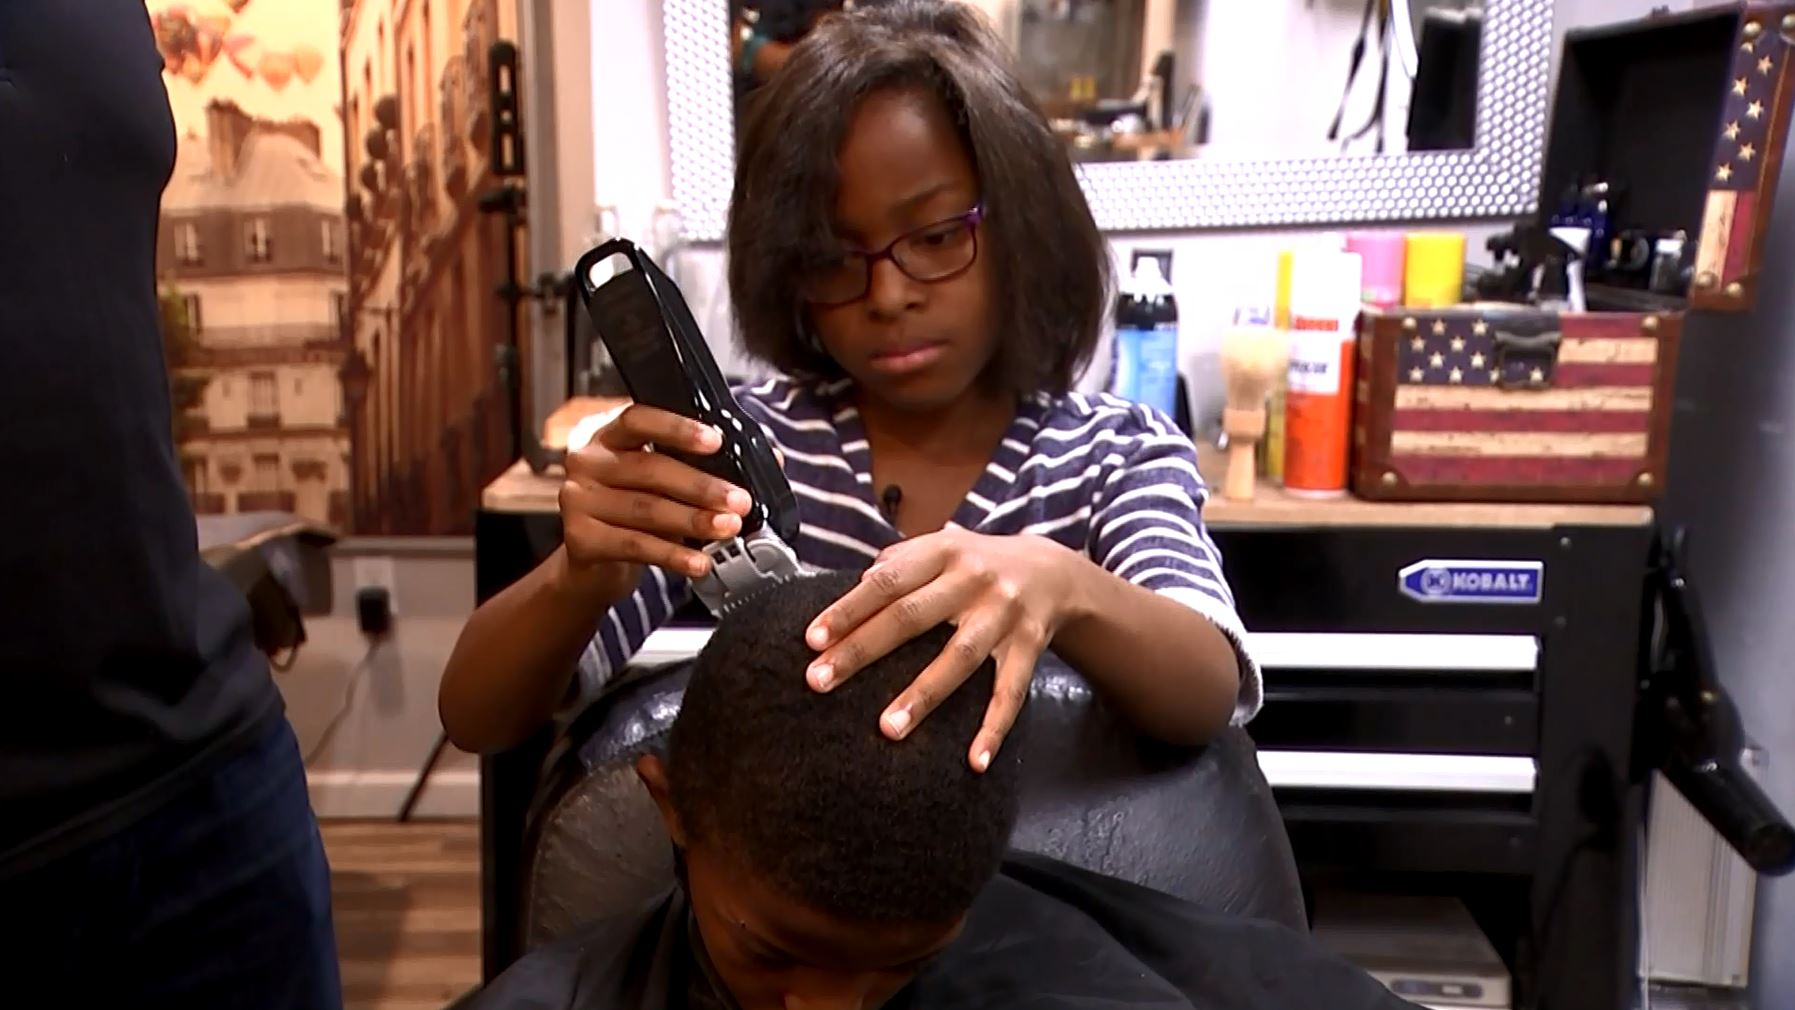 8-year-old girl becomes barber, gives free haircuts to neighborhood kids